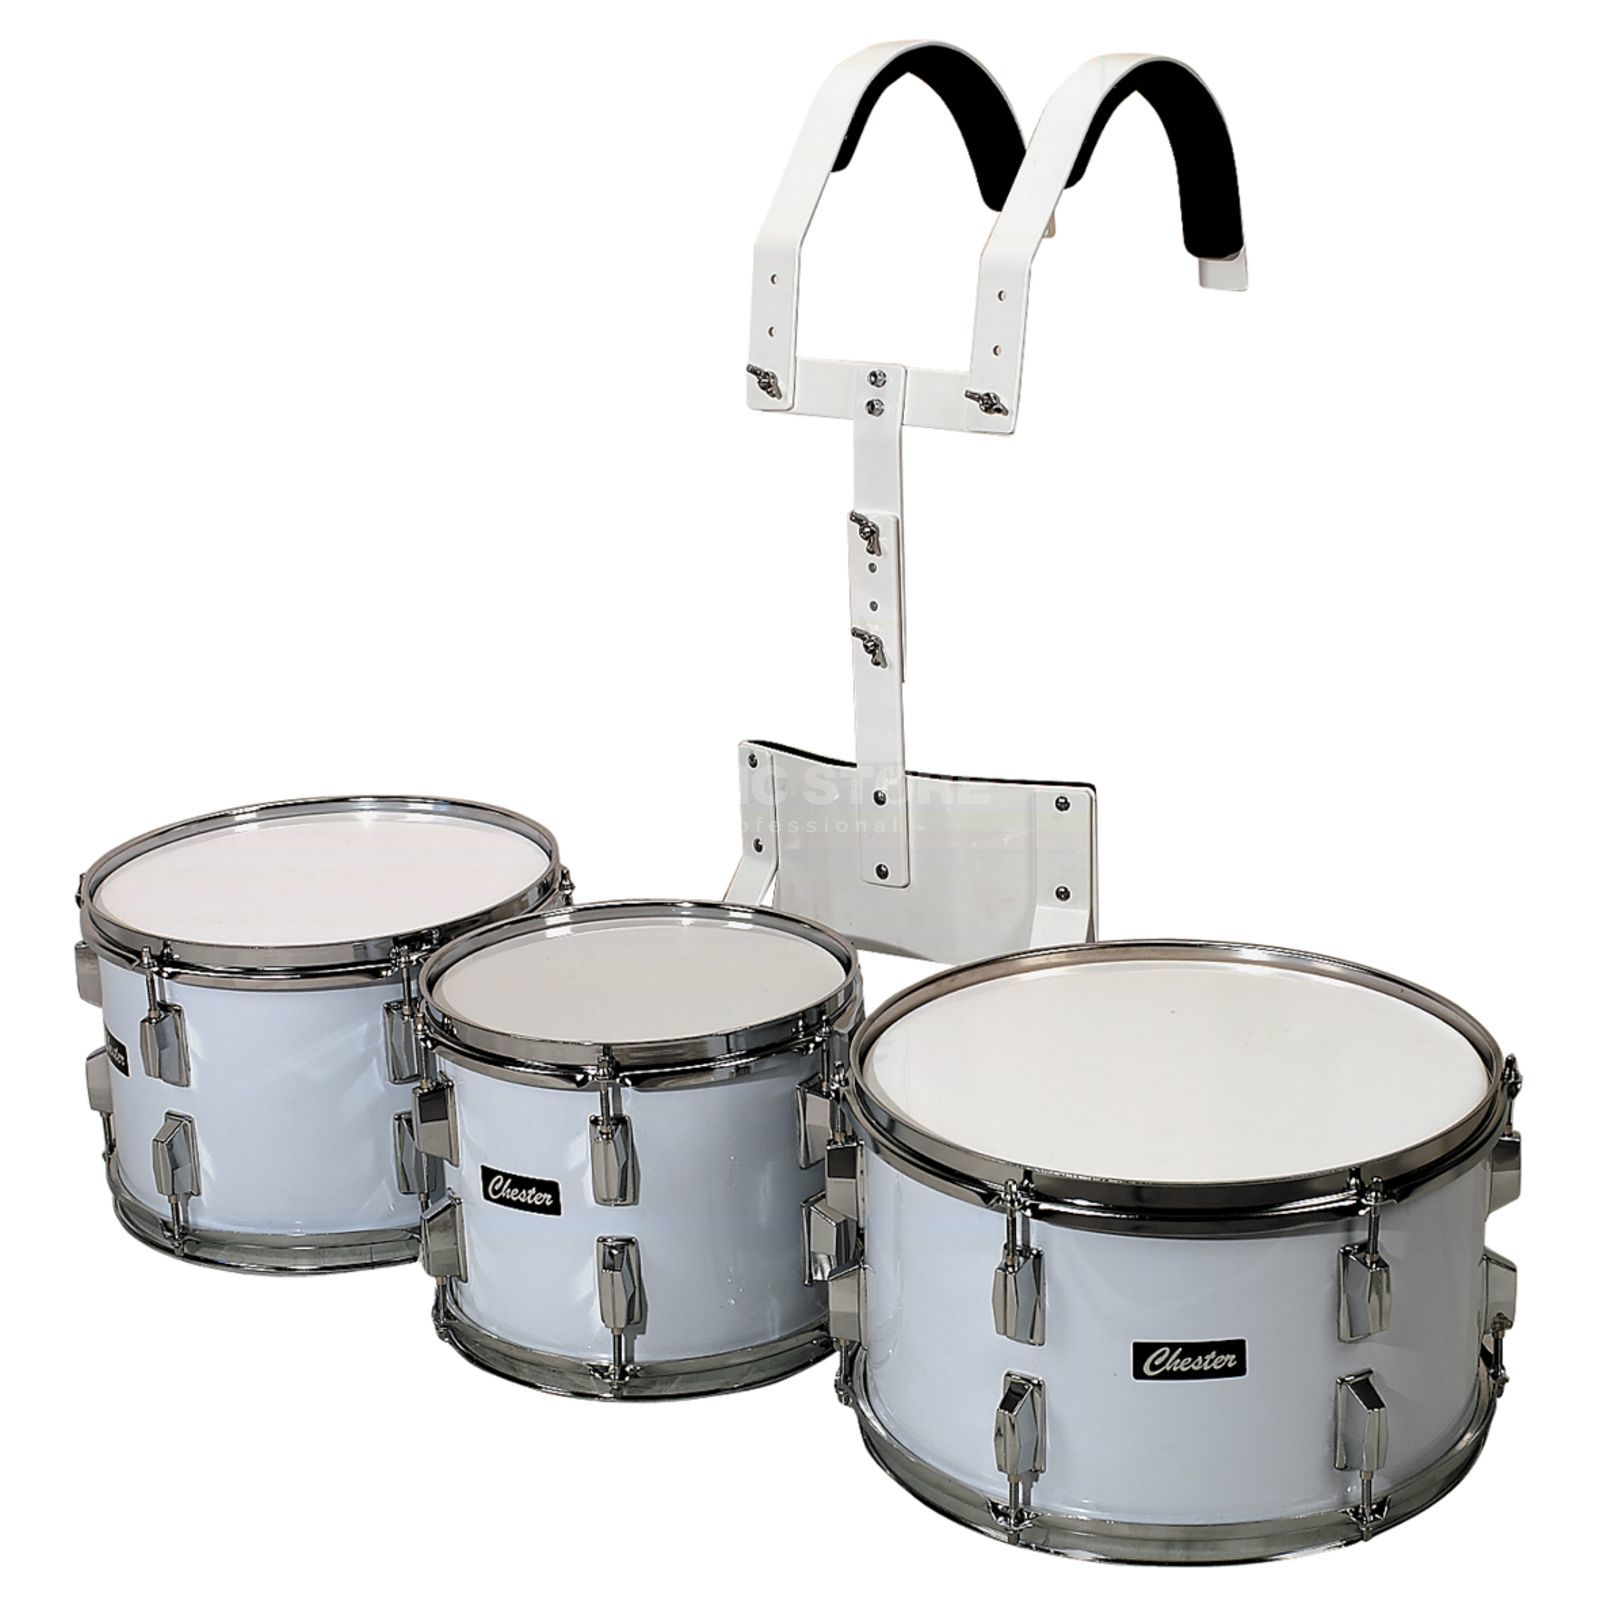 "Gewa Marching Drum Set, 10"", 12"", 14"" Produktbillede"